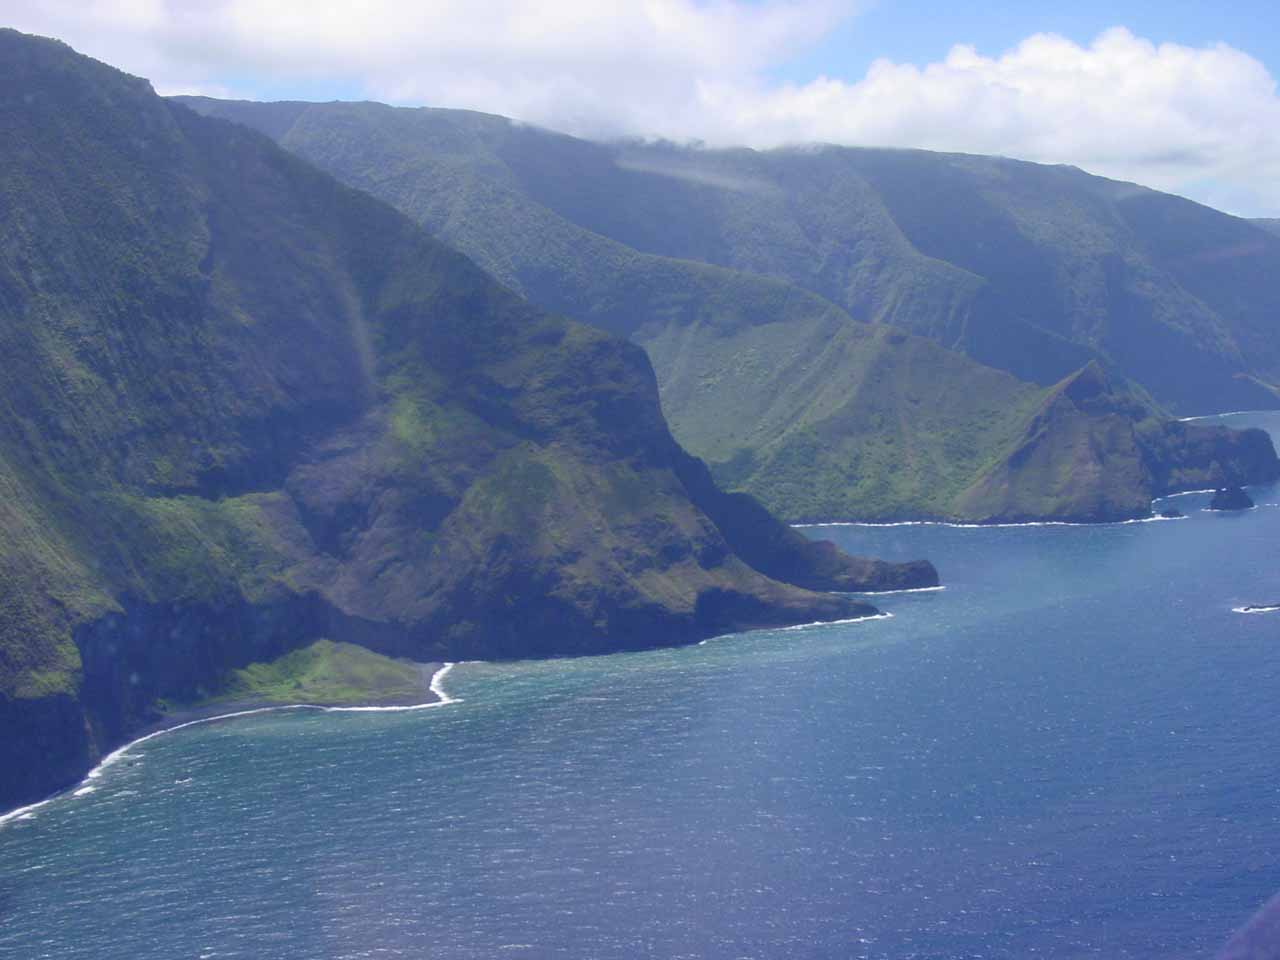 Papalaua Falls was in one of the short valleys facing the rugged and steep cliffs of the North Shore of Moloka'i